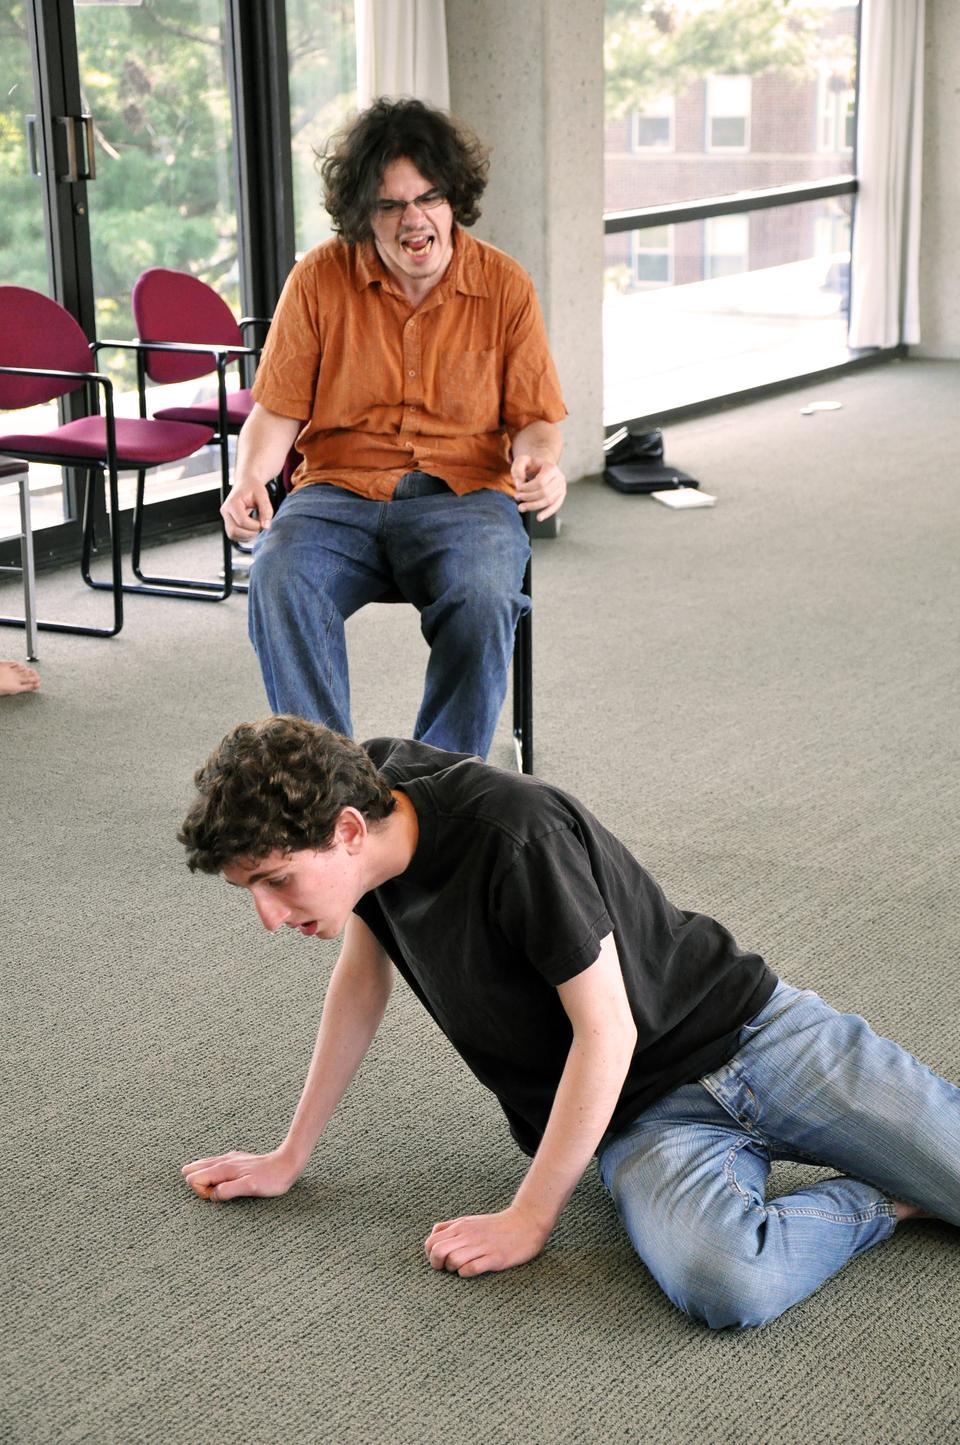 """Joseph G. Hodgkin '12 and Michael Handelman rehearse a scene for """"Pericles"""", which will be playing in the Adams Pool Theater through Saturday, May 1st."""